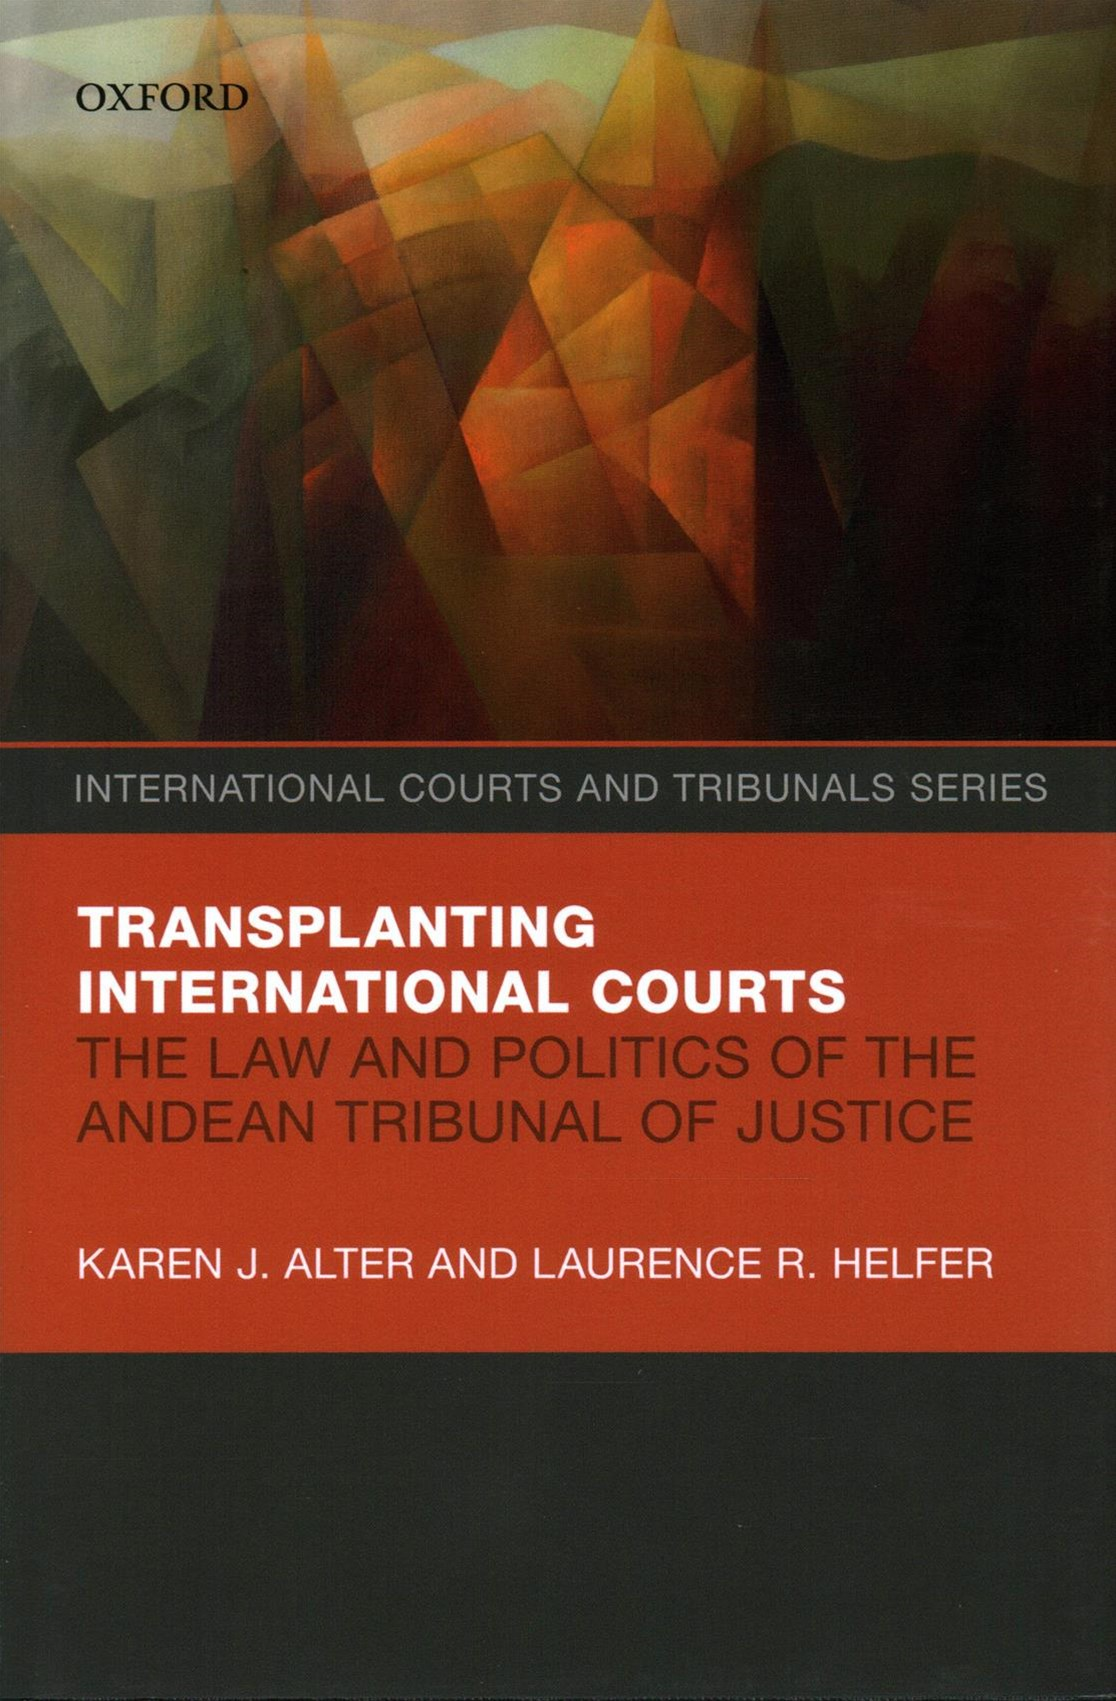 The Law and Politics of the Andean Tribunal of Justice